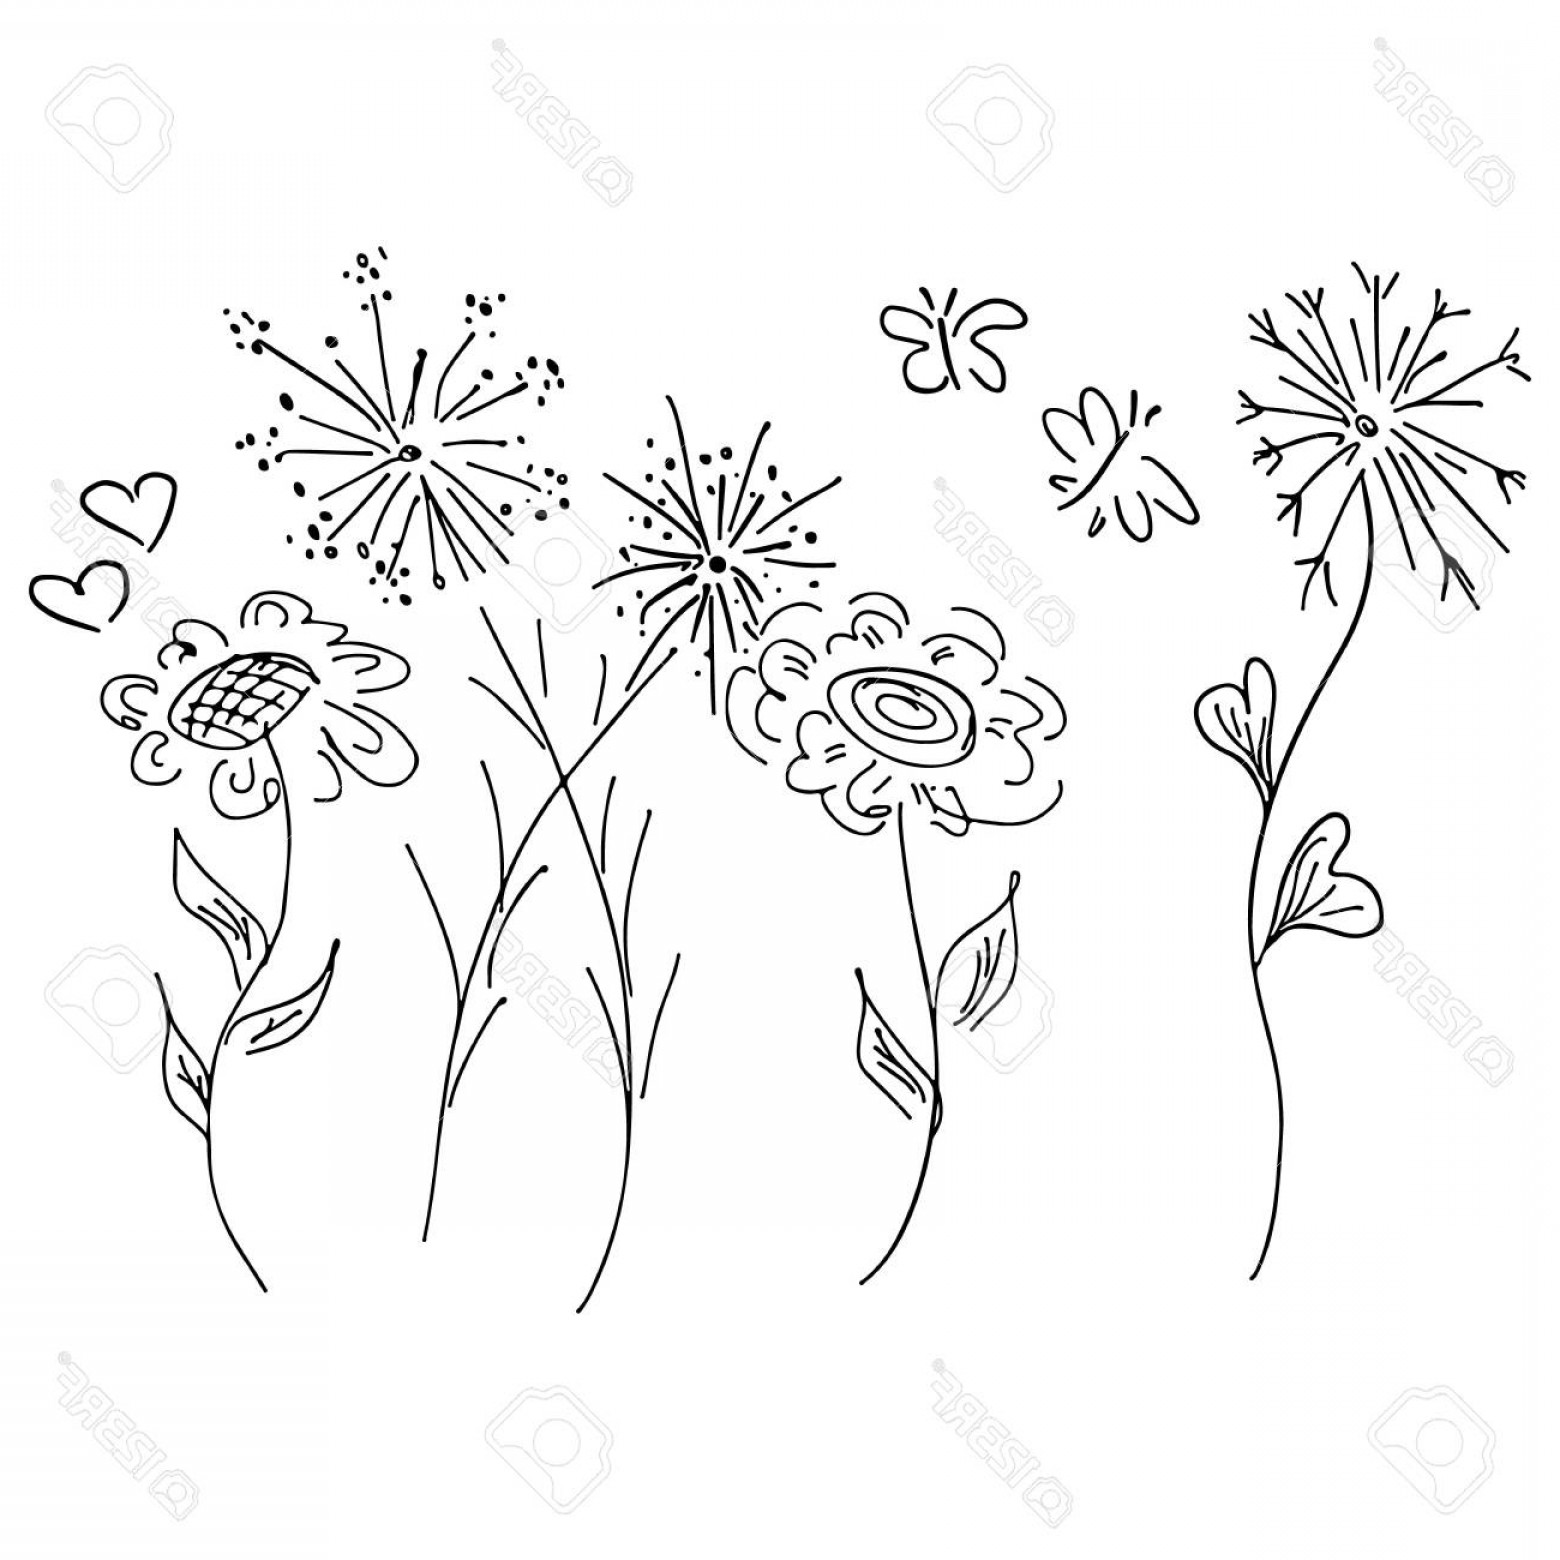 Wildflowers Outline Vector: Photostock Vector Abstract Outline Icon Of Wildflowers And Butterfly Isolated On White Background Hand Drawn Vector Il